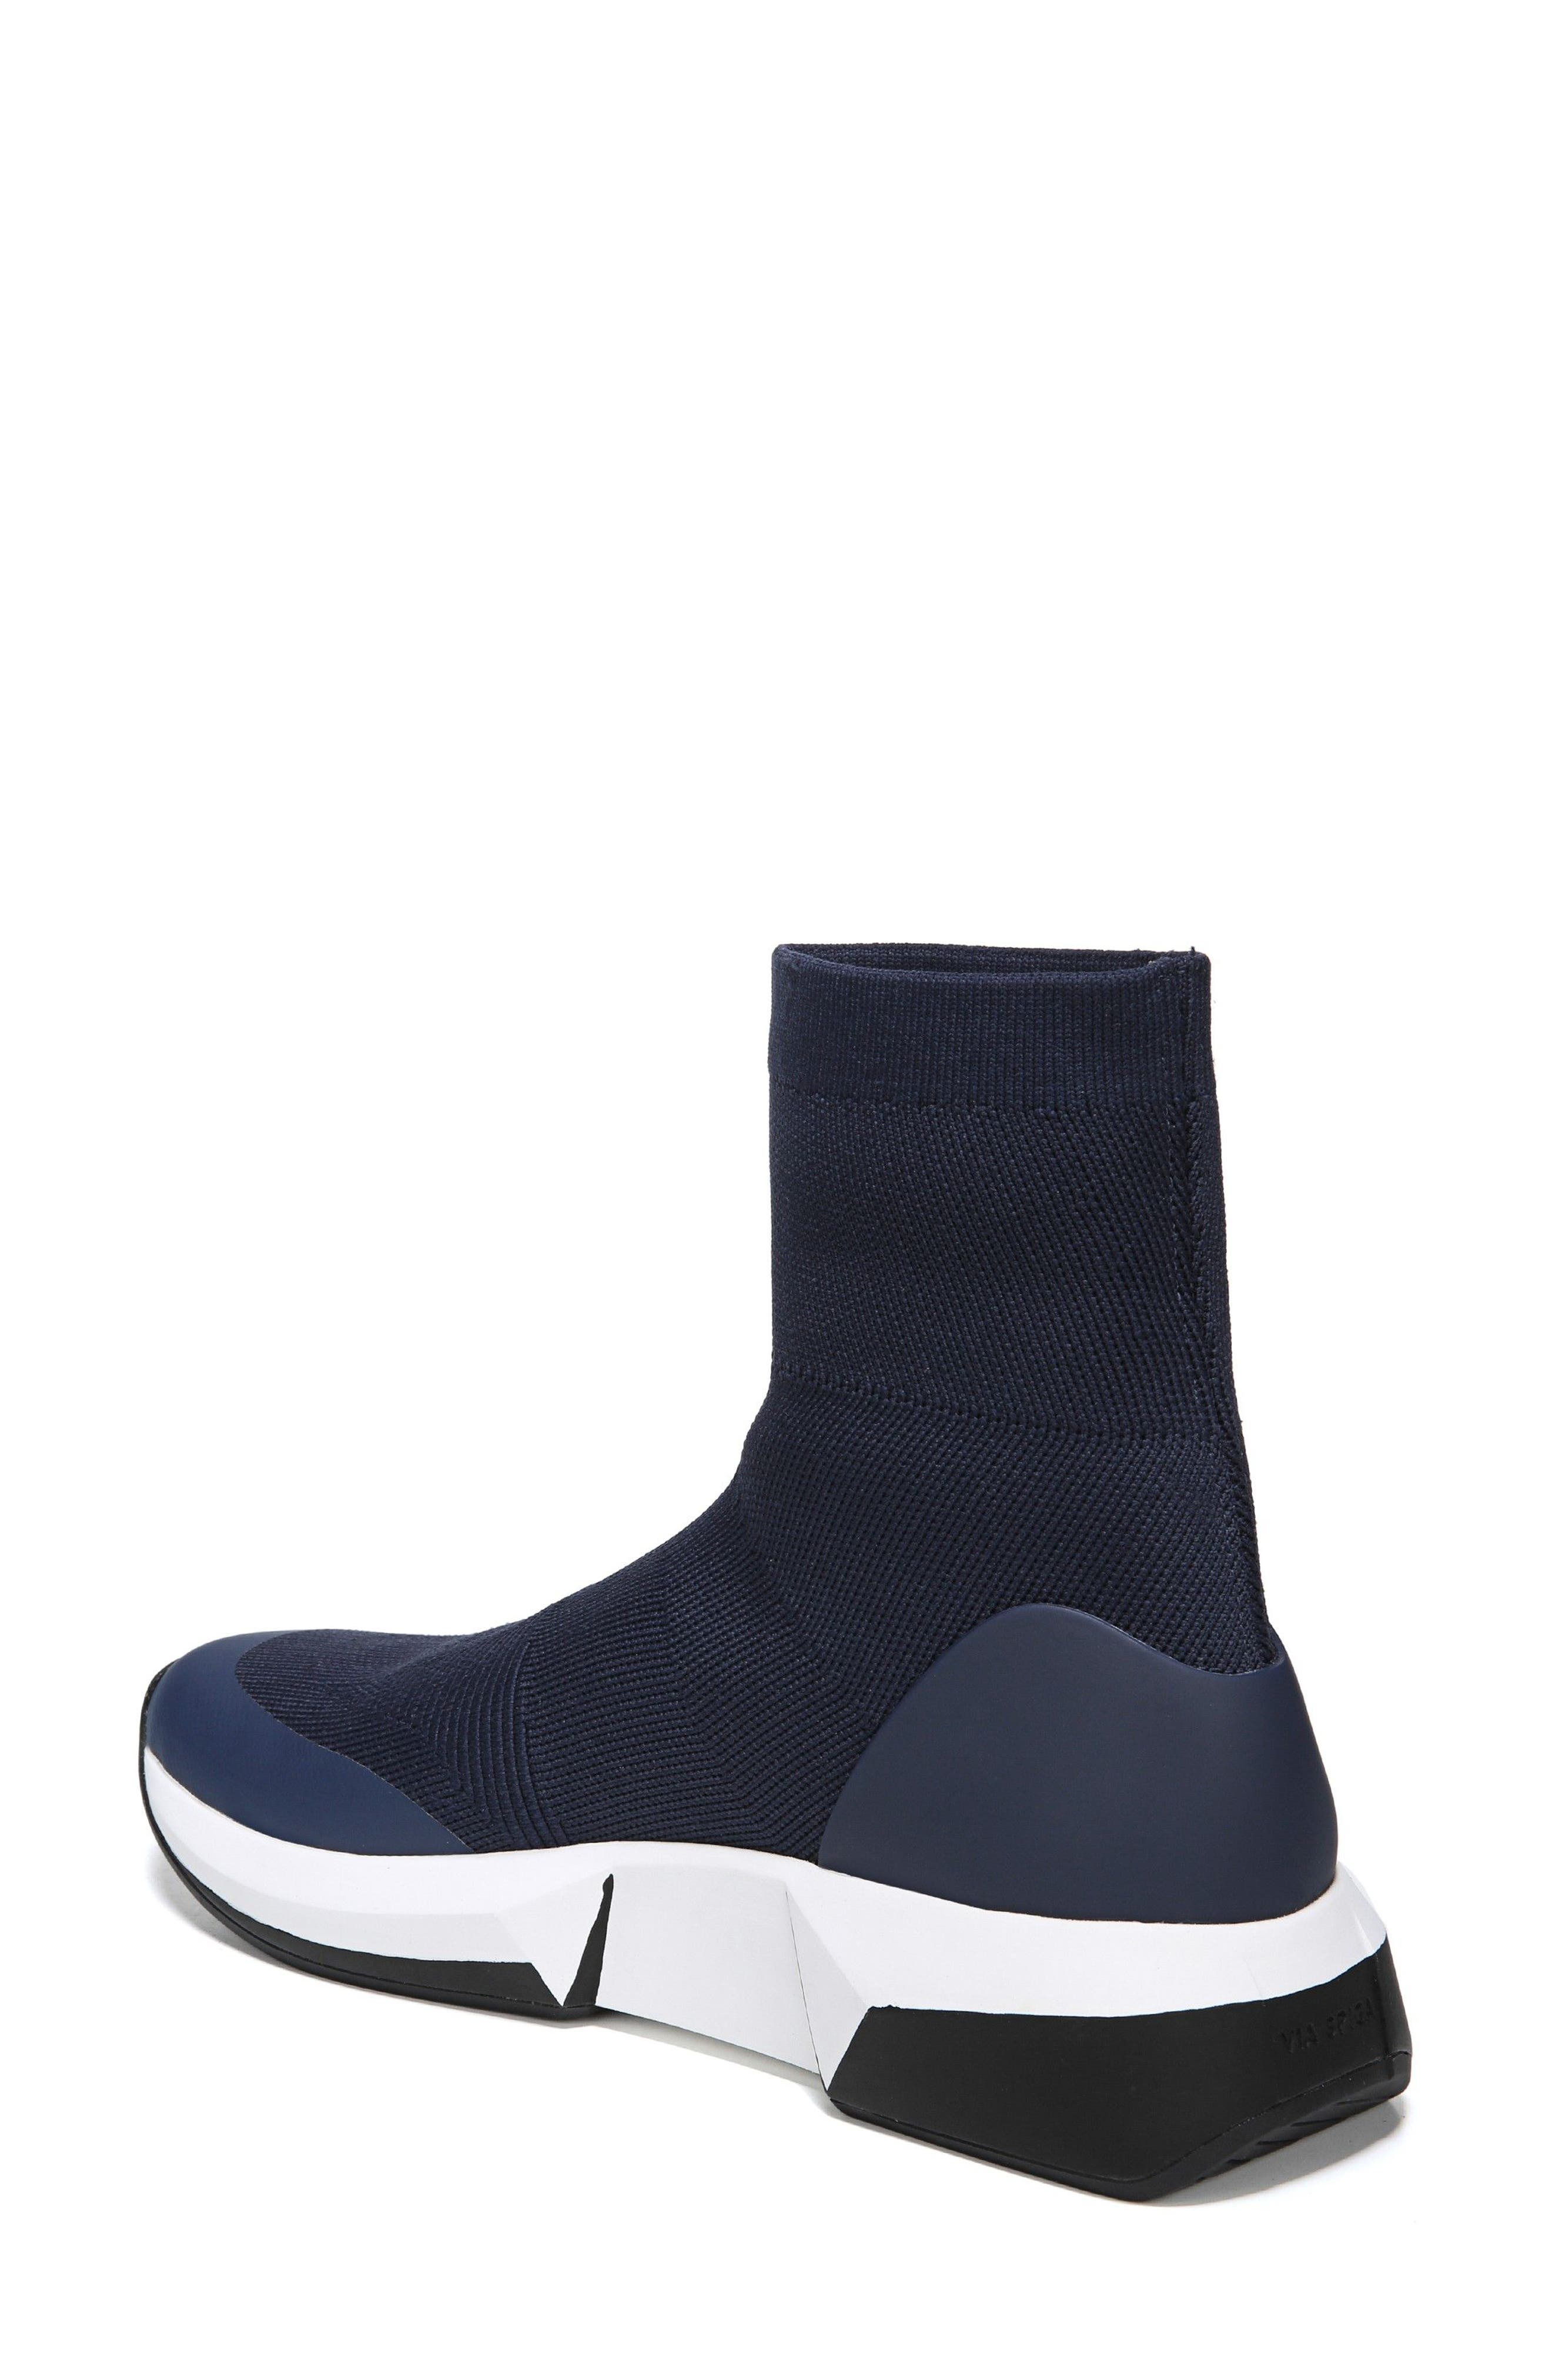 Verion High Top Sock Sneaker,                             Alternate thumbnail 2, color,                             Sapphire Fabric